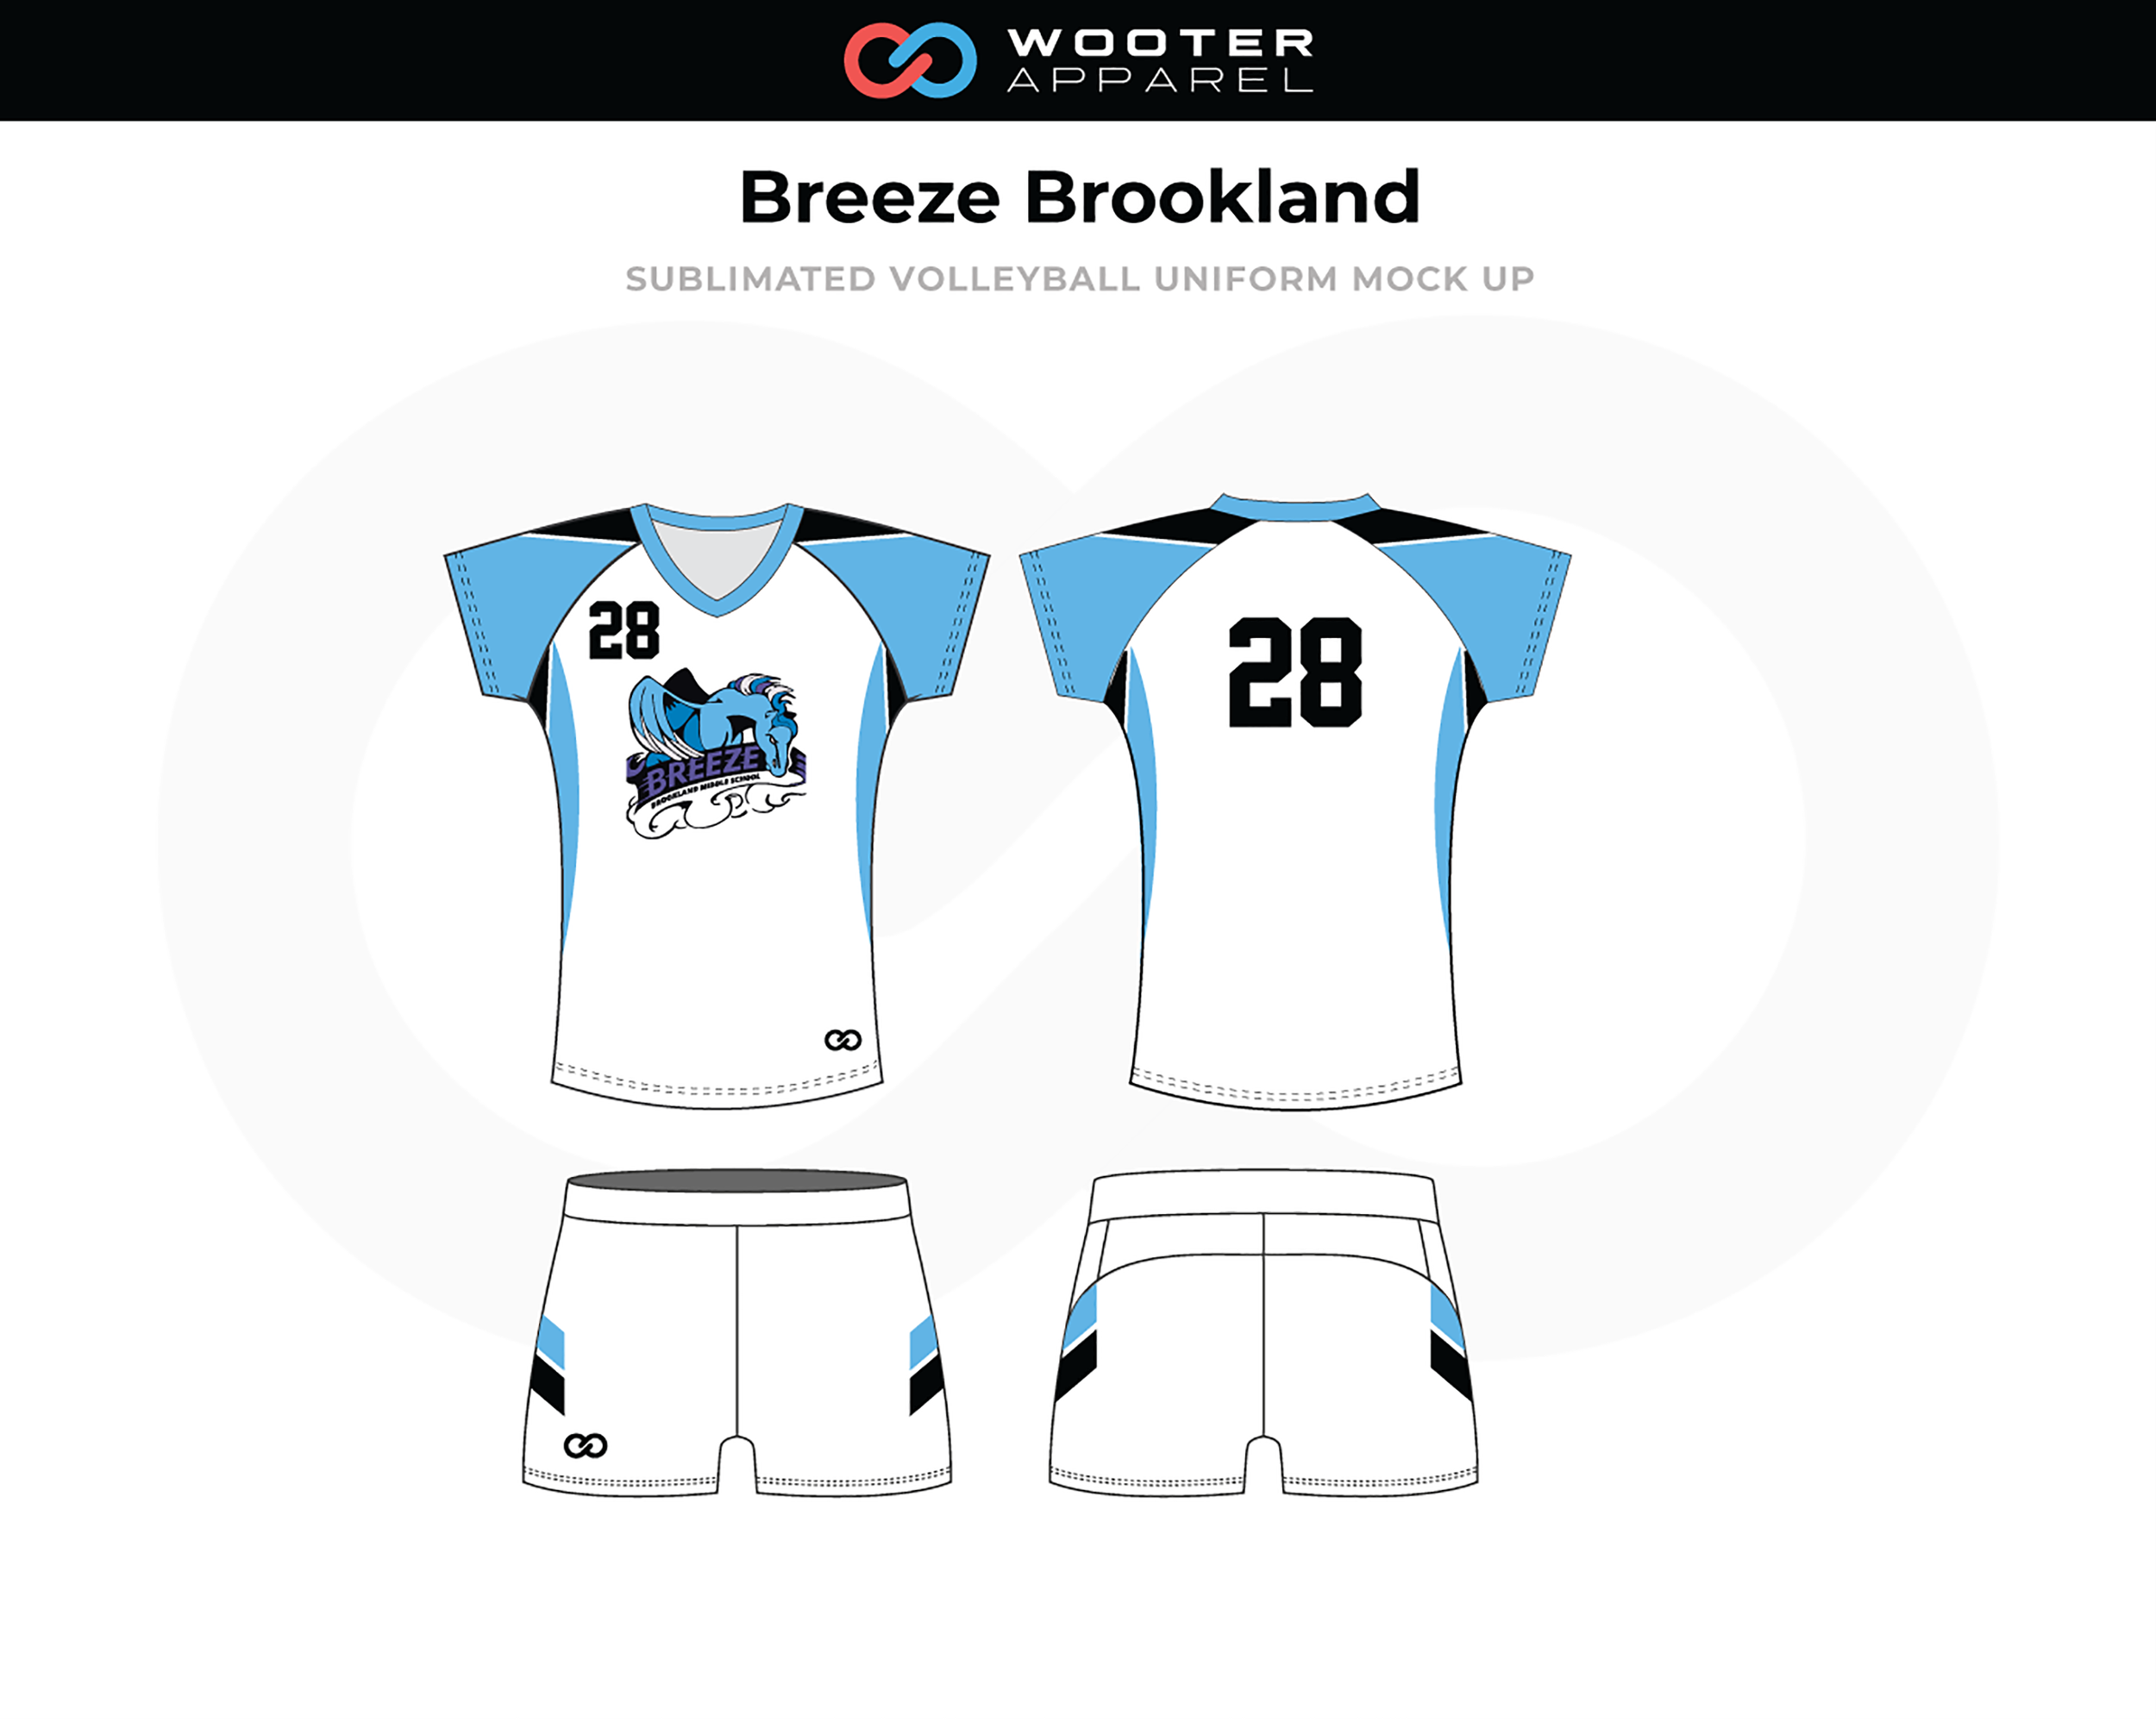 Breeze-Brookland-Sublimated_Volleyball_Uniform_v1.png